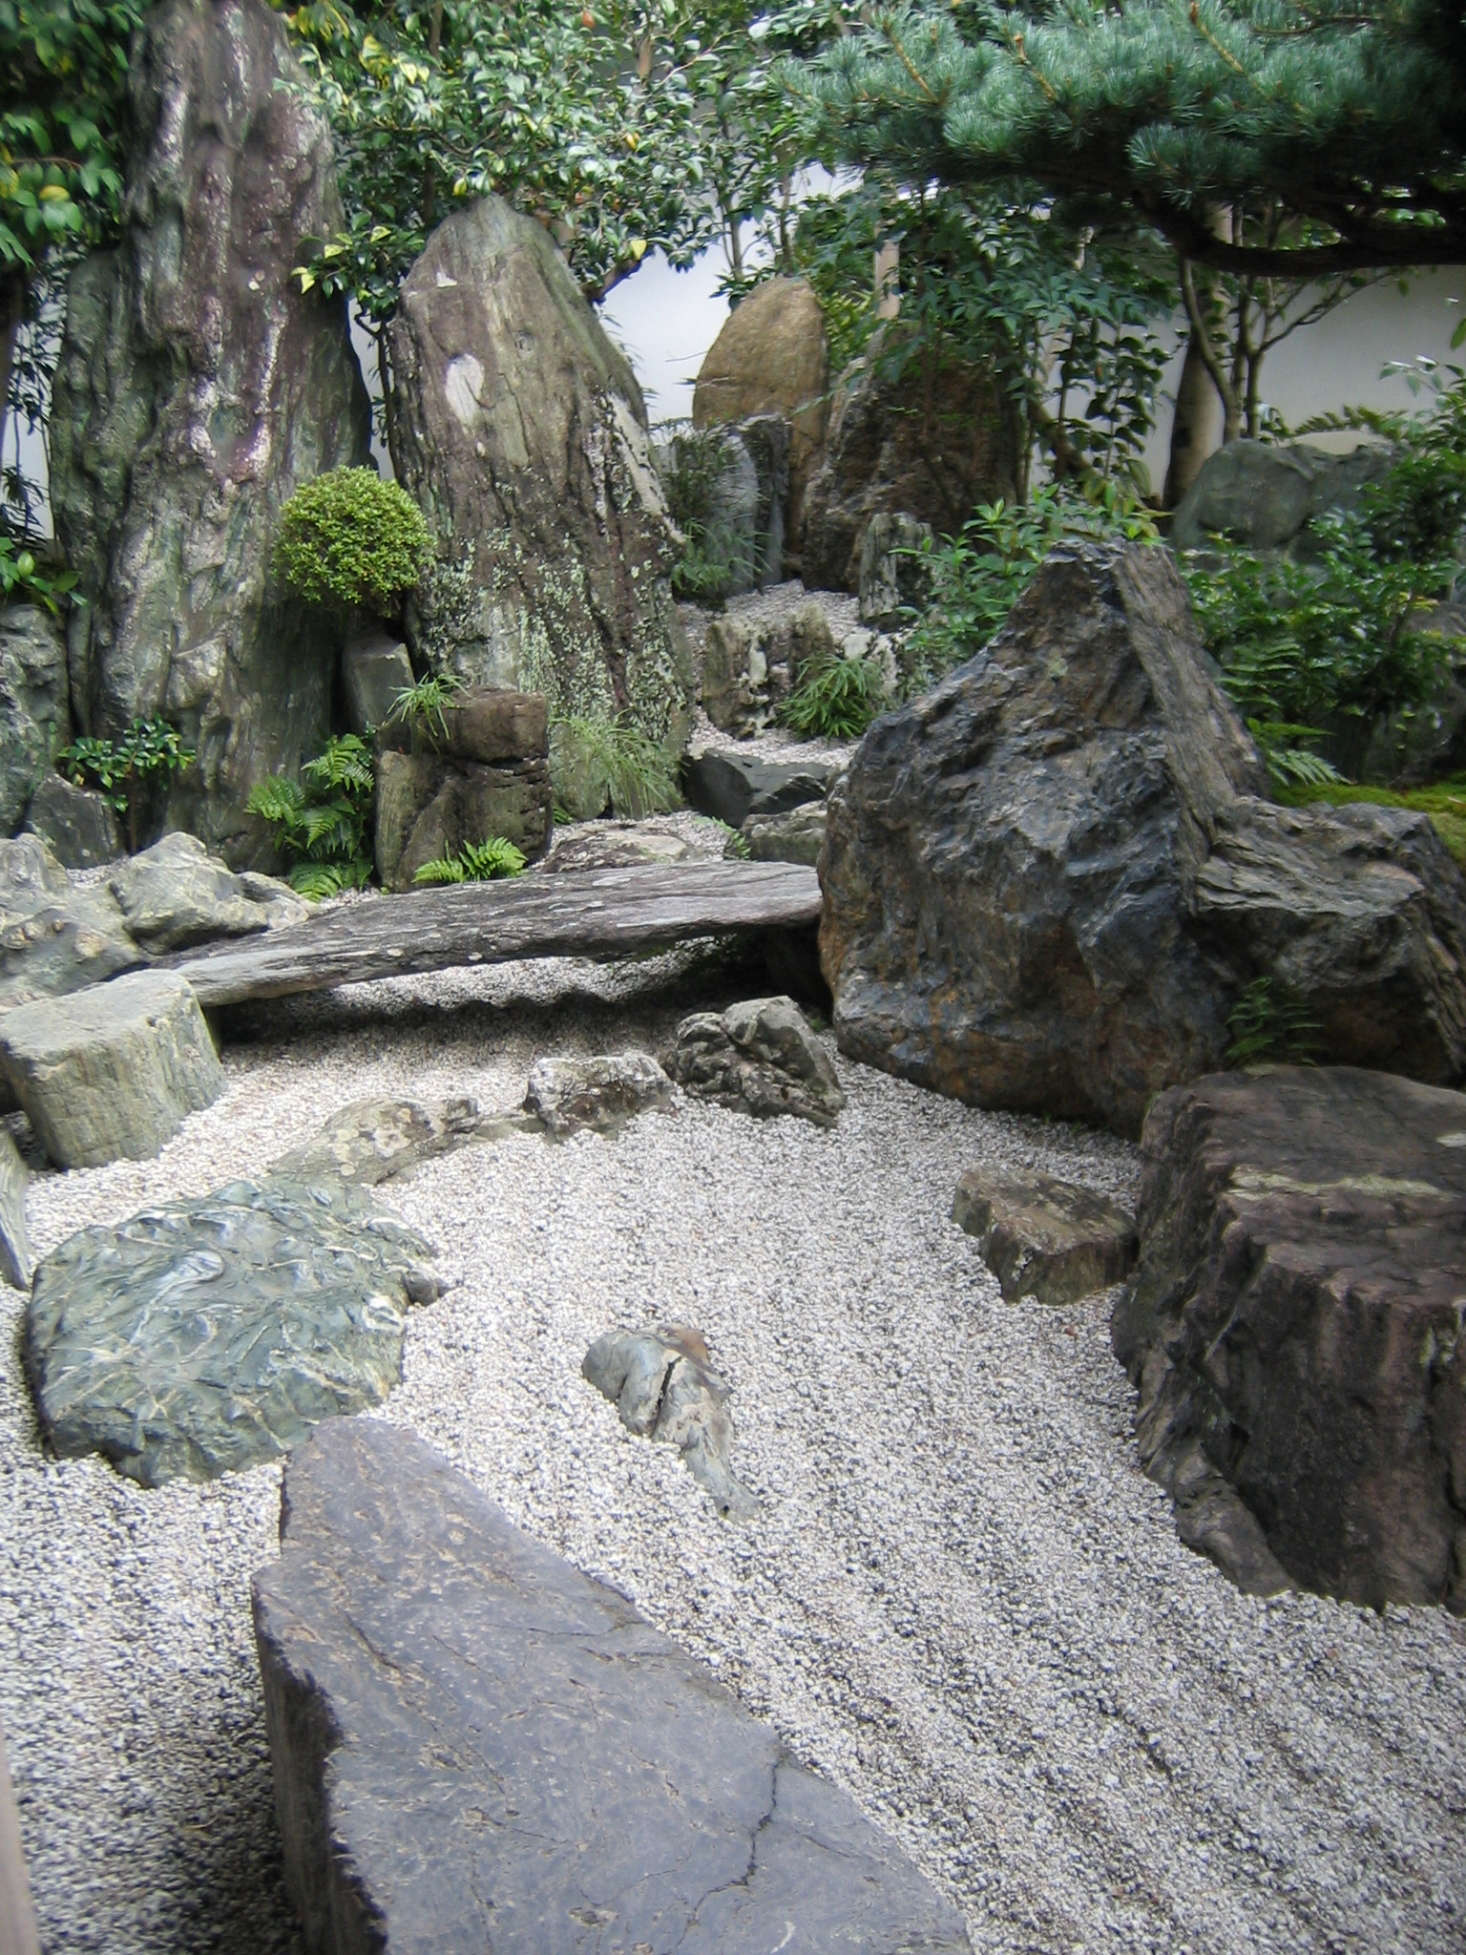 10 Garden Ideas to Steal from Japanese Zen Masters - Gardenista on zen gardens in japan, backyard landscaping, home design and landscaping, zen plans, zen patio ideas, western gardens landscaping, pool design and landscaping, yard landscaping, zen landscape, zen sand designs, zen wall design, dog friendly landscaping, zen flowers designs to soothe, zen looking plants,